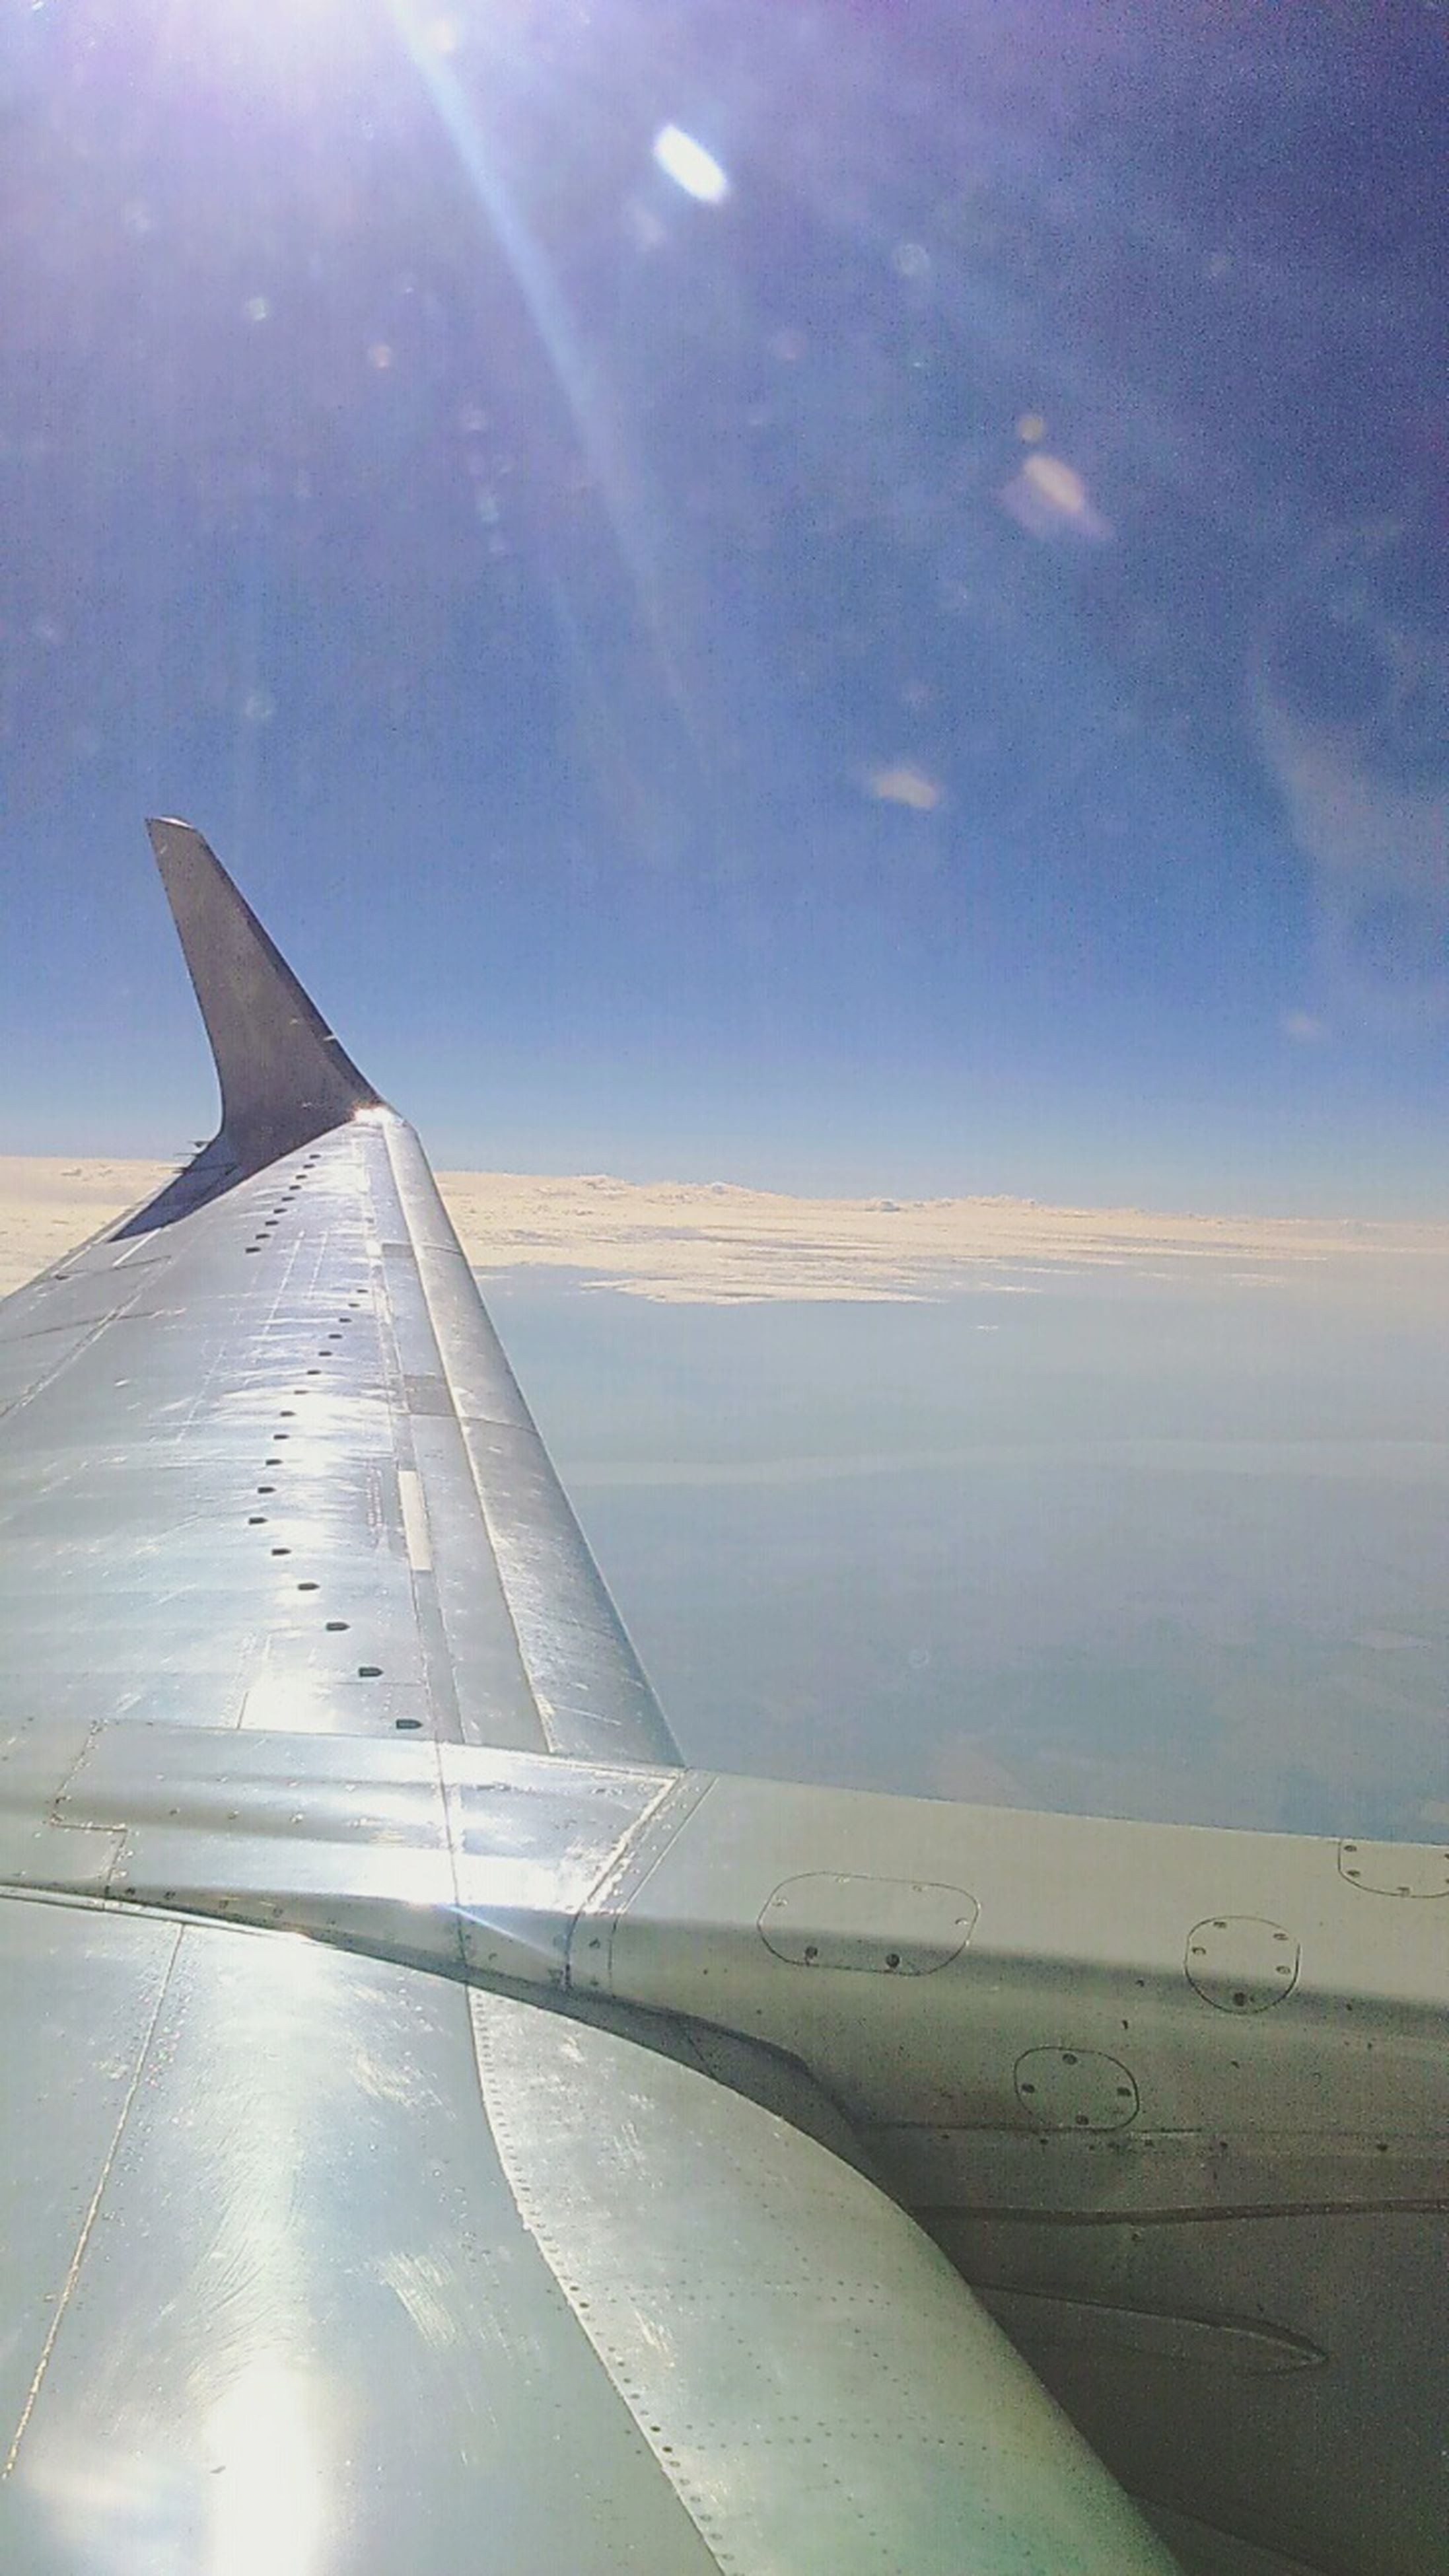 airplane, aircraft wing, air vehicle, flying, transportation, mode of transport, part of, sky, cropped, aerial view, mid-air, travel, cloud - sky, journey, airplane wing, on the move, nature, blue, beauty in nature, scenics